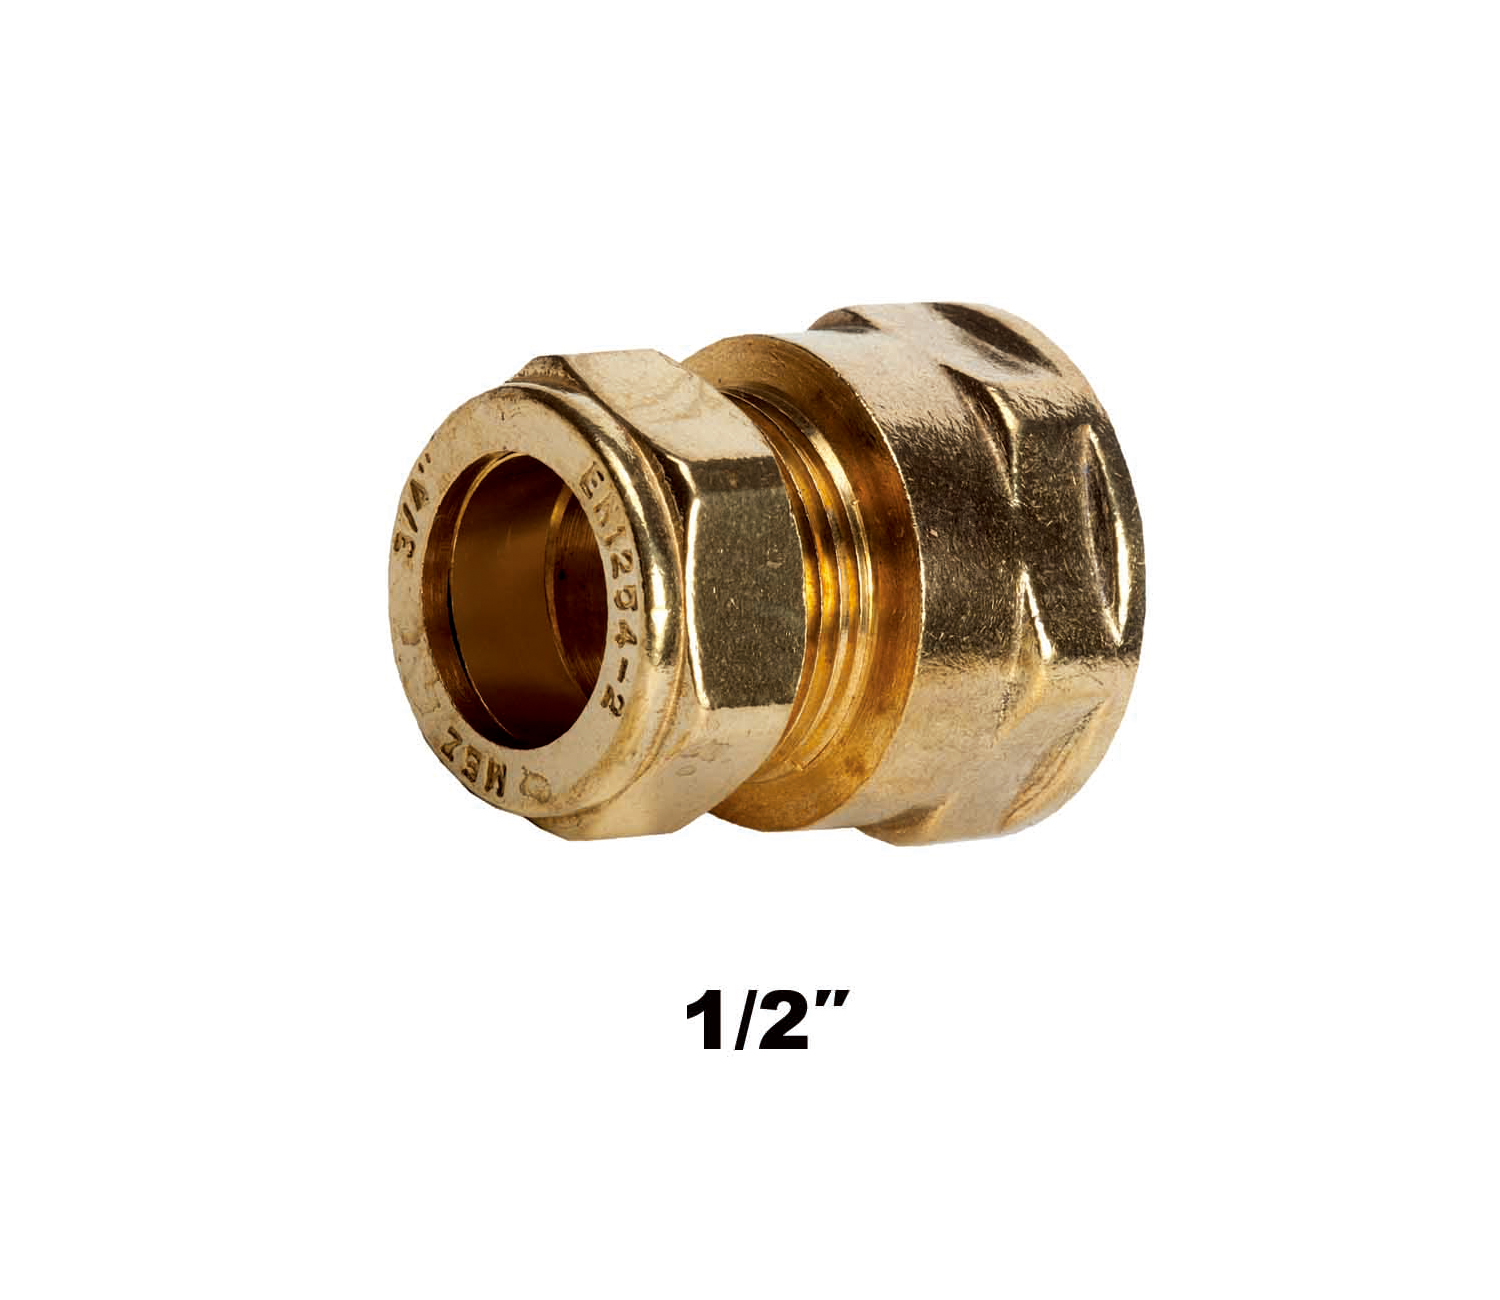 Straight Compression Coupler FI X C 1/2″ (3121)